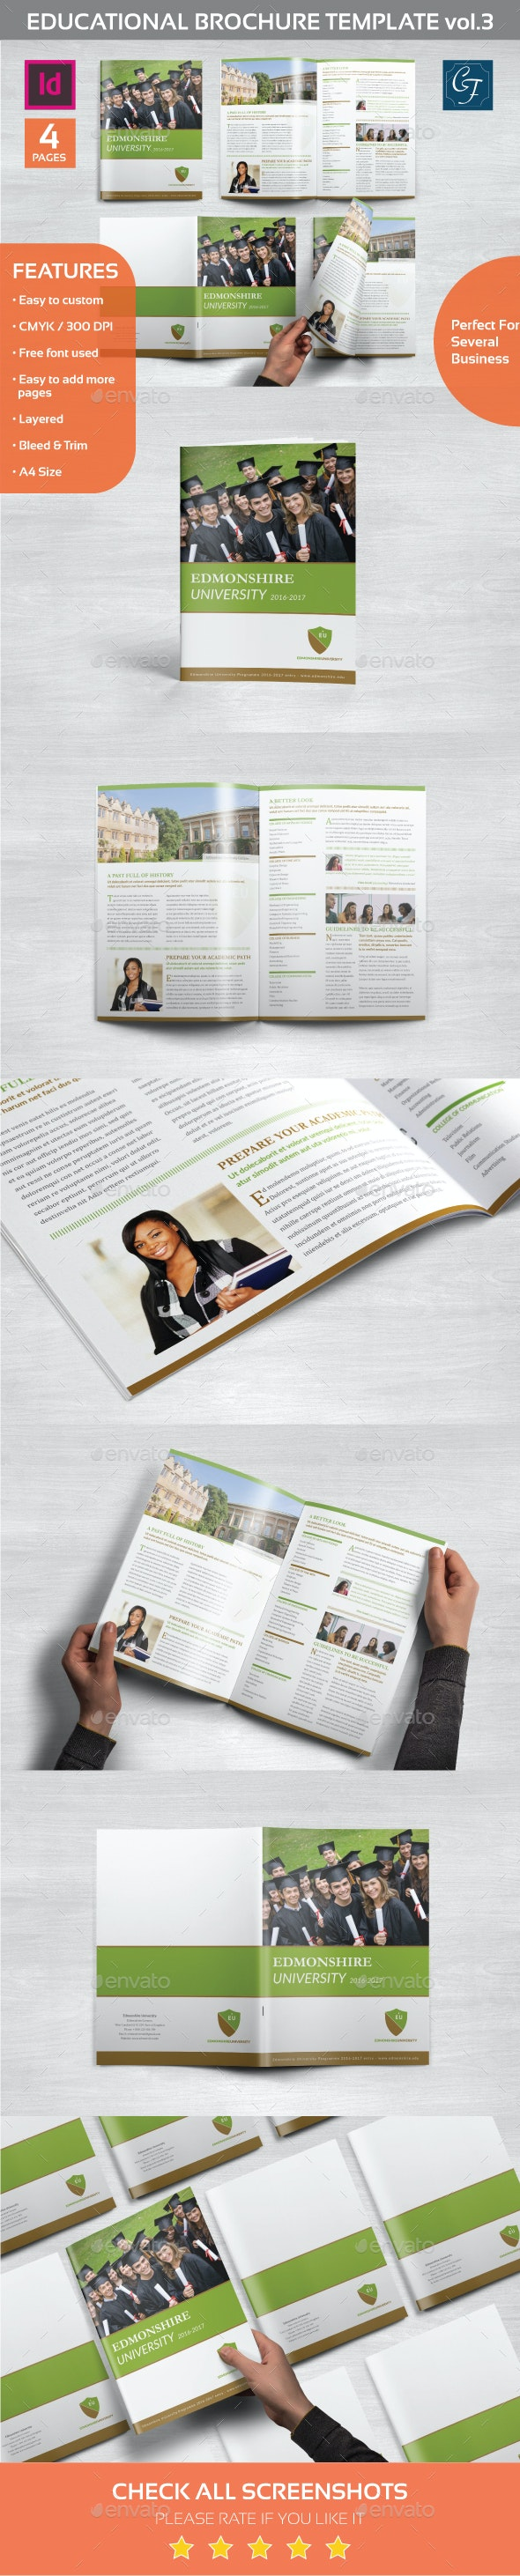 Educational Brochure Template vol.3 - Informational Brochures